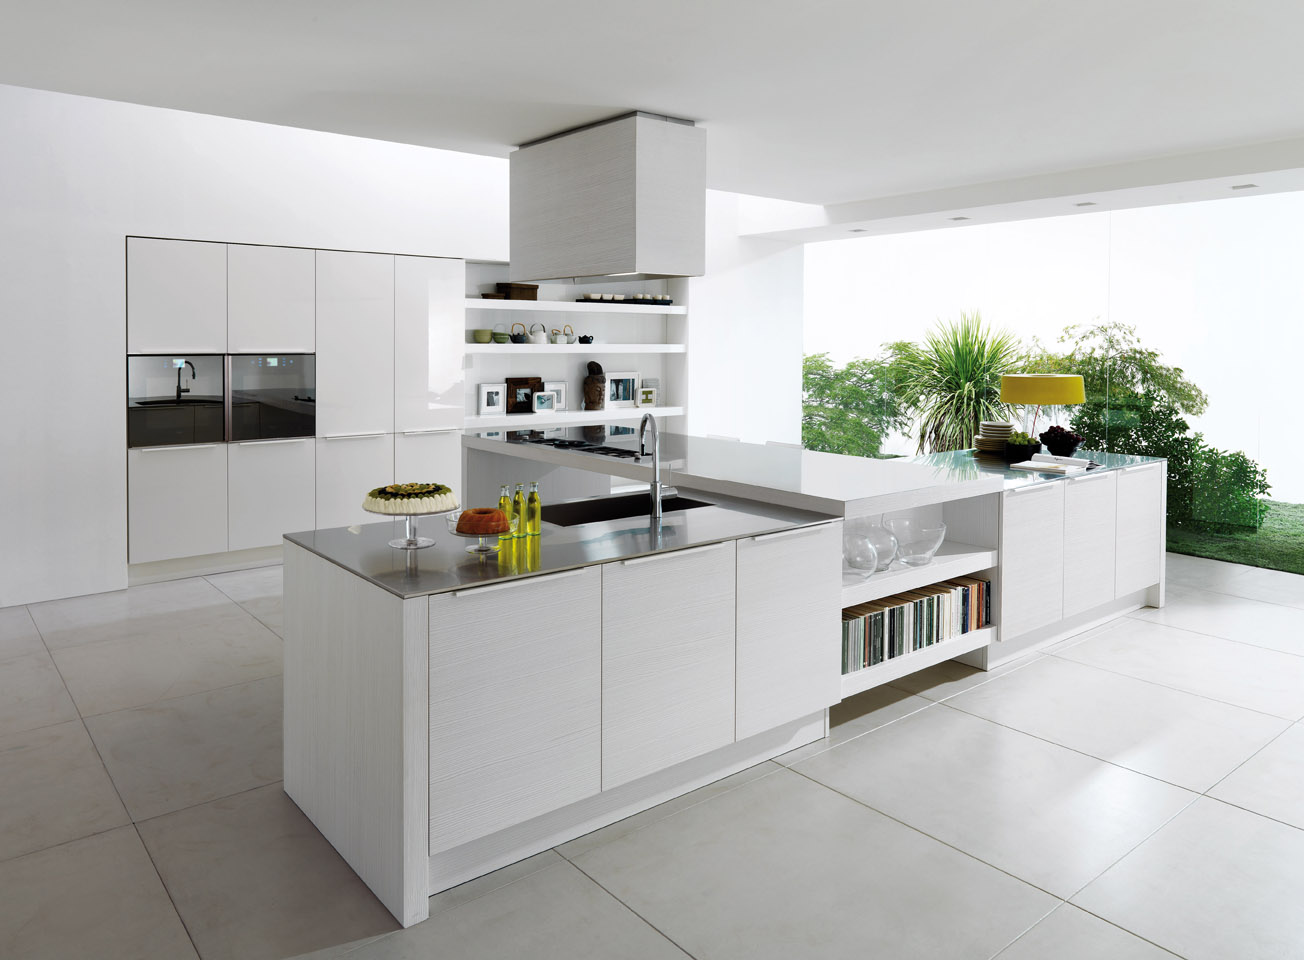 Magnificent Modern Kitchen Design Ideas 1304 x 960 · 183 kB · jpeg